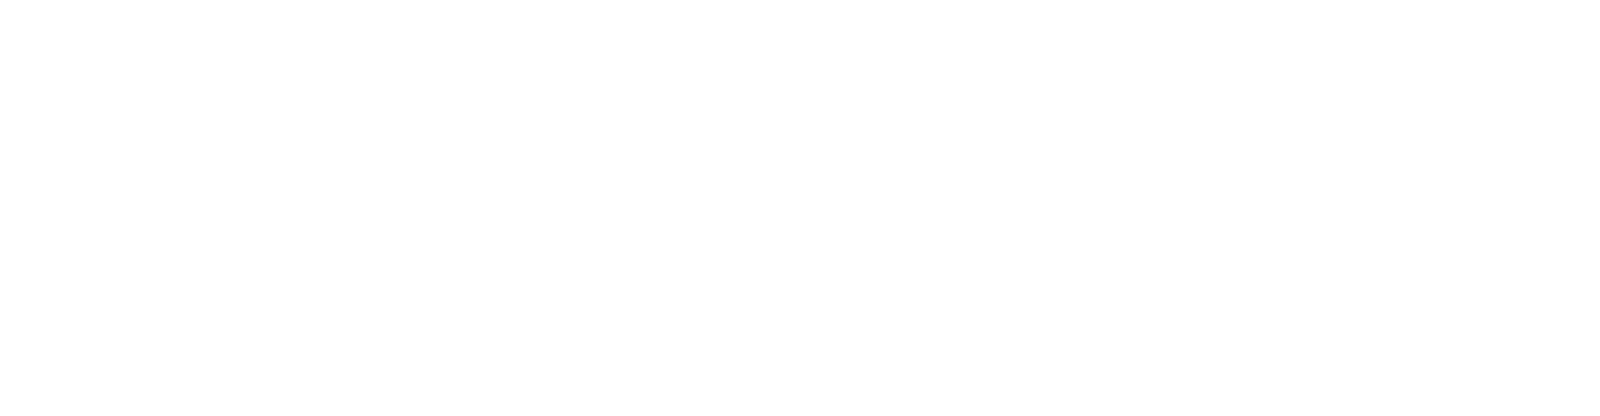 TopFunnel Help Desk